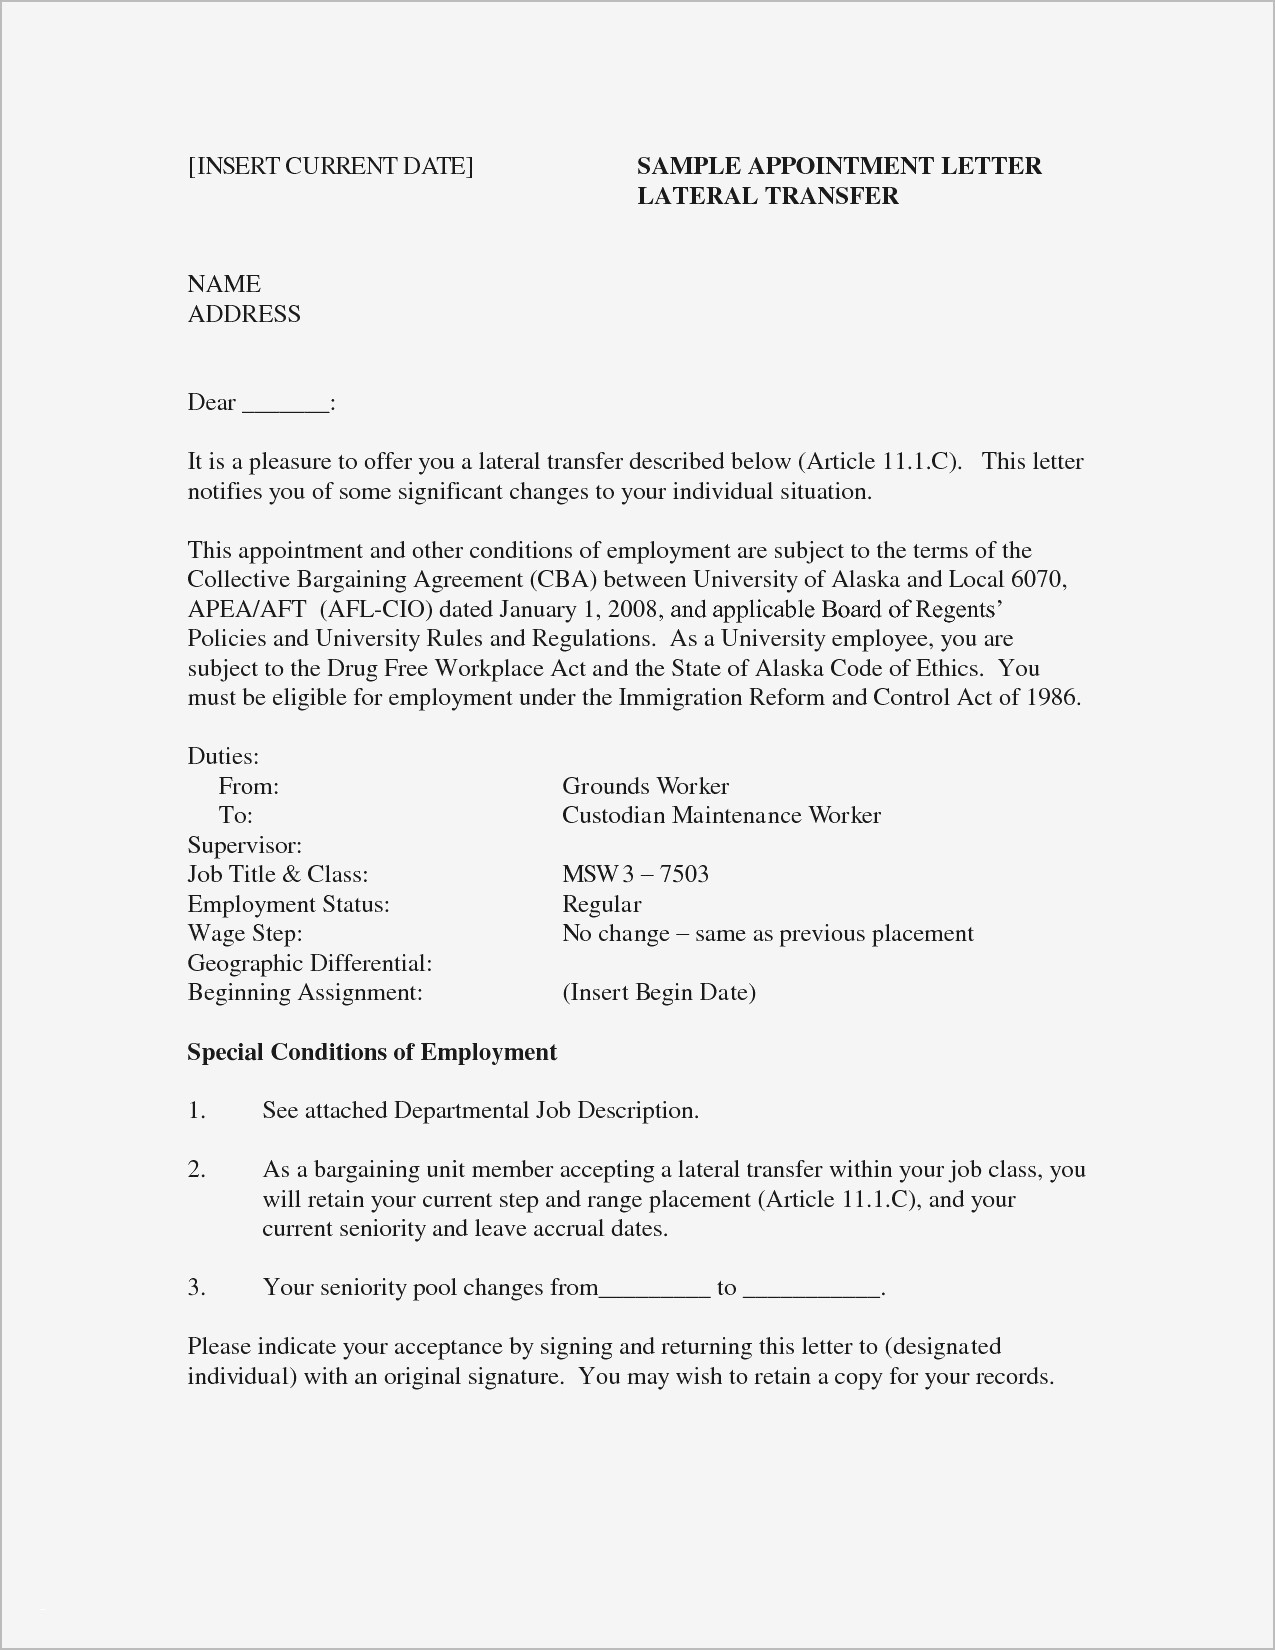 Resume Building Services - Best Rated Resume Writing Services New Resume Review Services Best